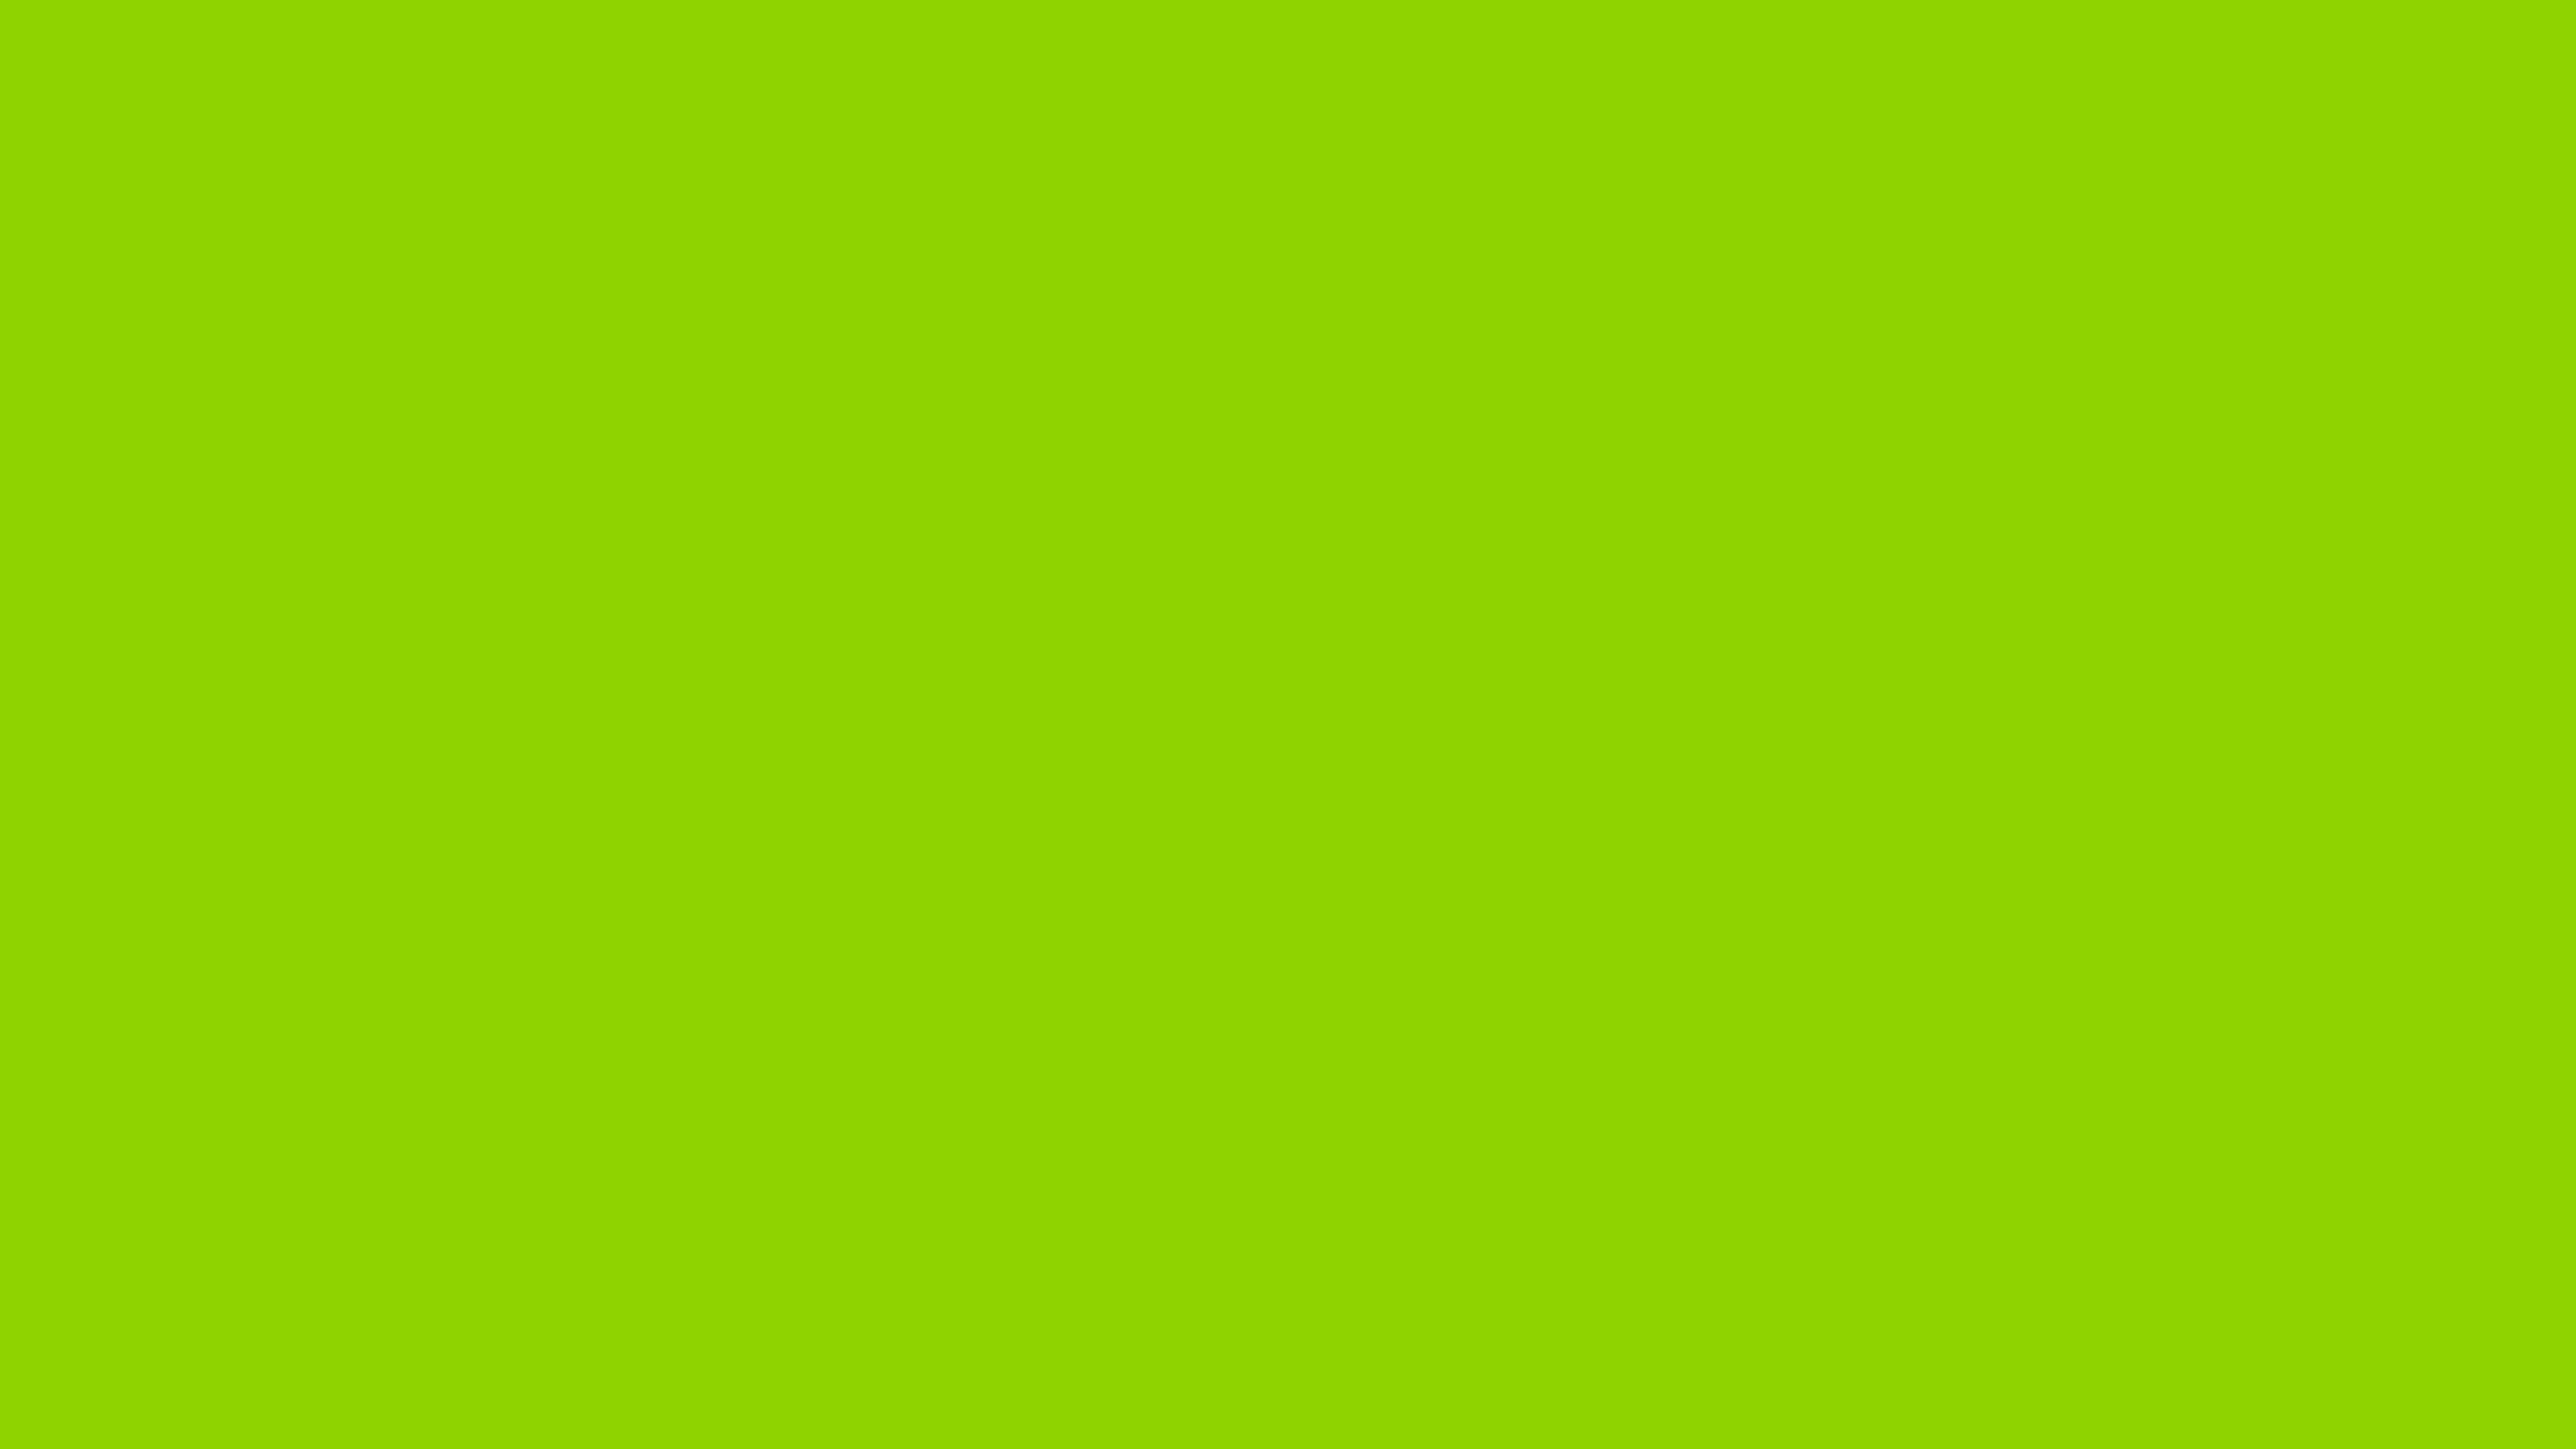 5120x2880 Sheen Green Solid Color Background